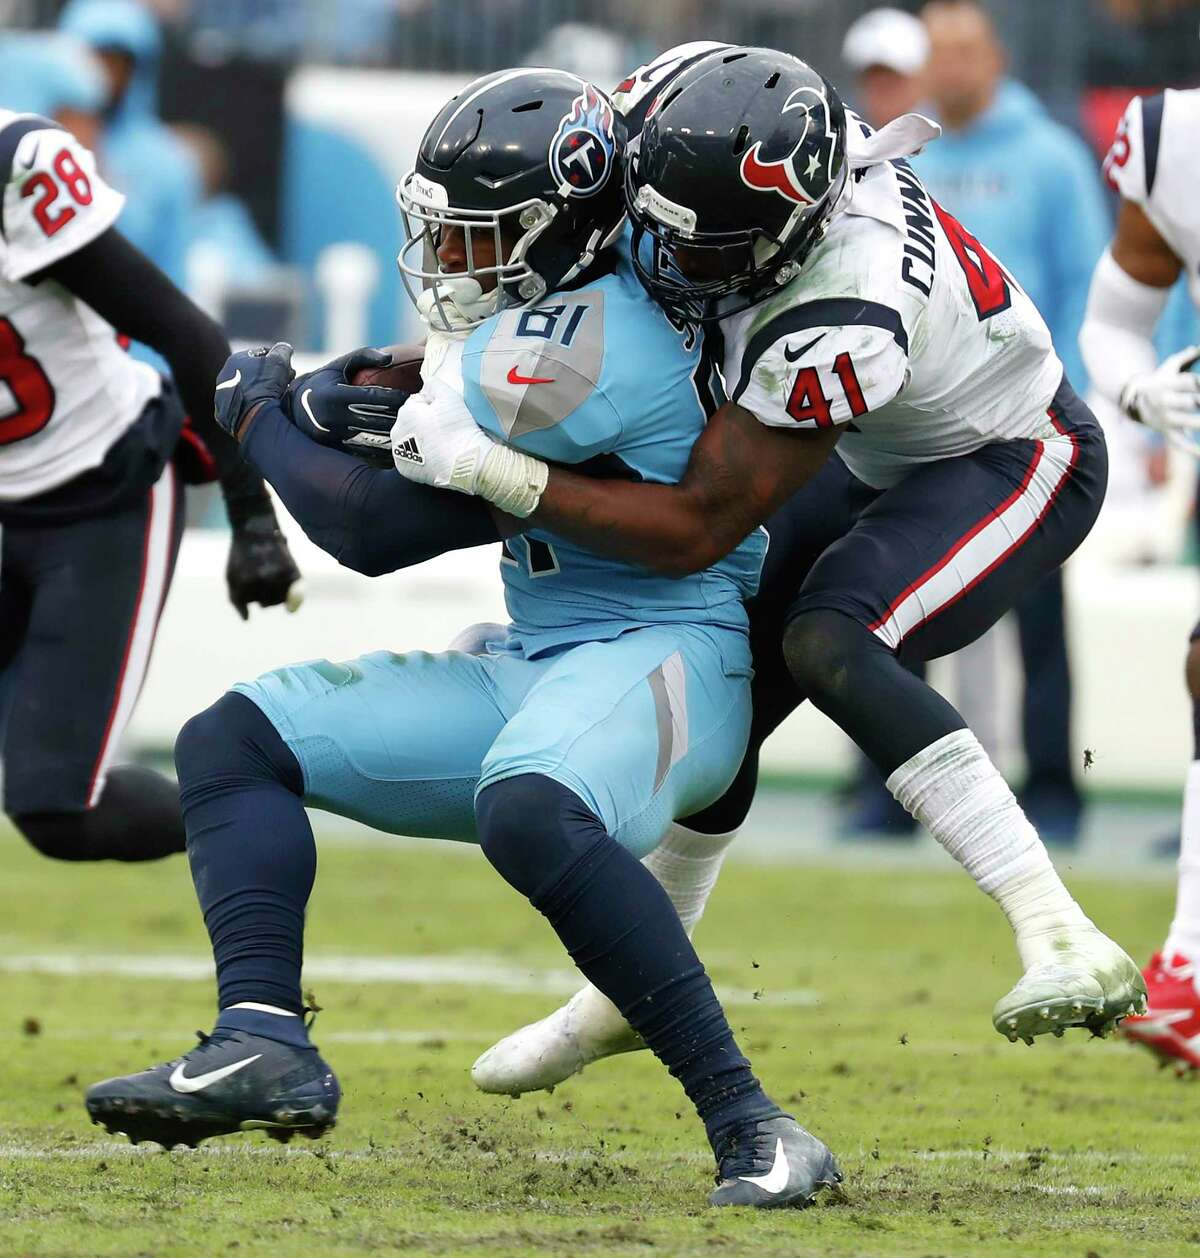 Houston Texans inside linebacker Zach Cunningham (41) stops Tennessee Titans tight end Jonnu Smith (81) during the fourth quarter of an NFL football game at Nissan Stadium on Sunday, Dec. 15, 2019, in Nashville.